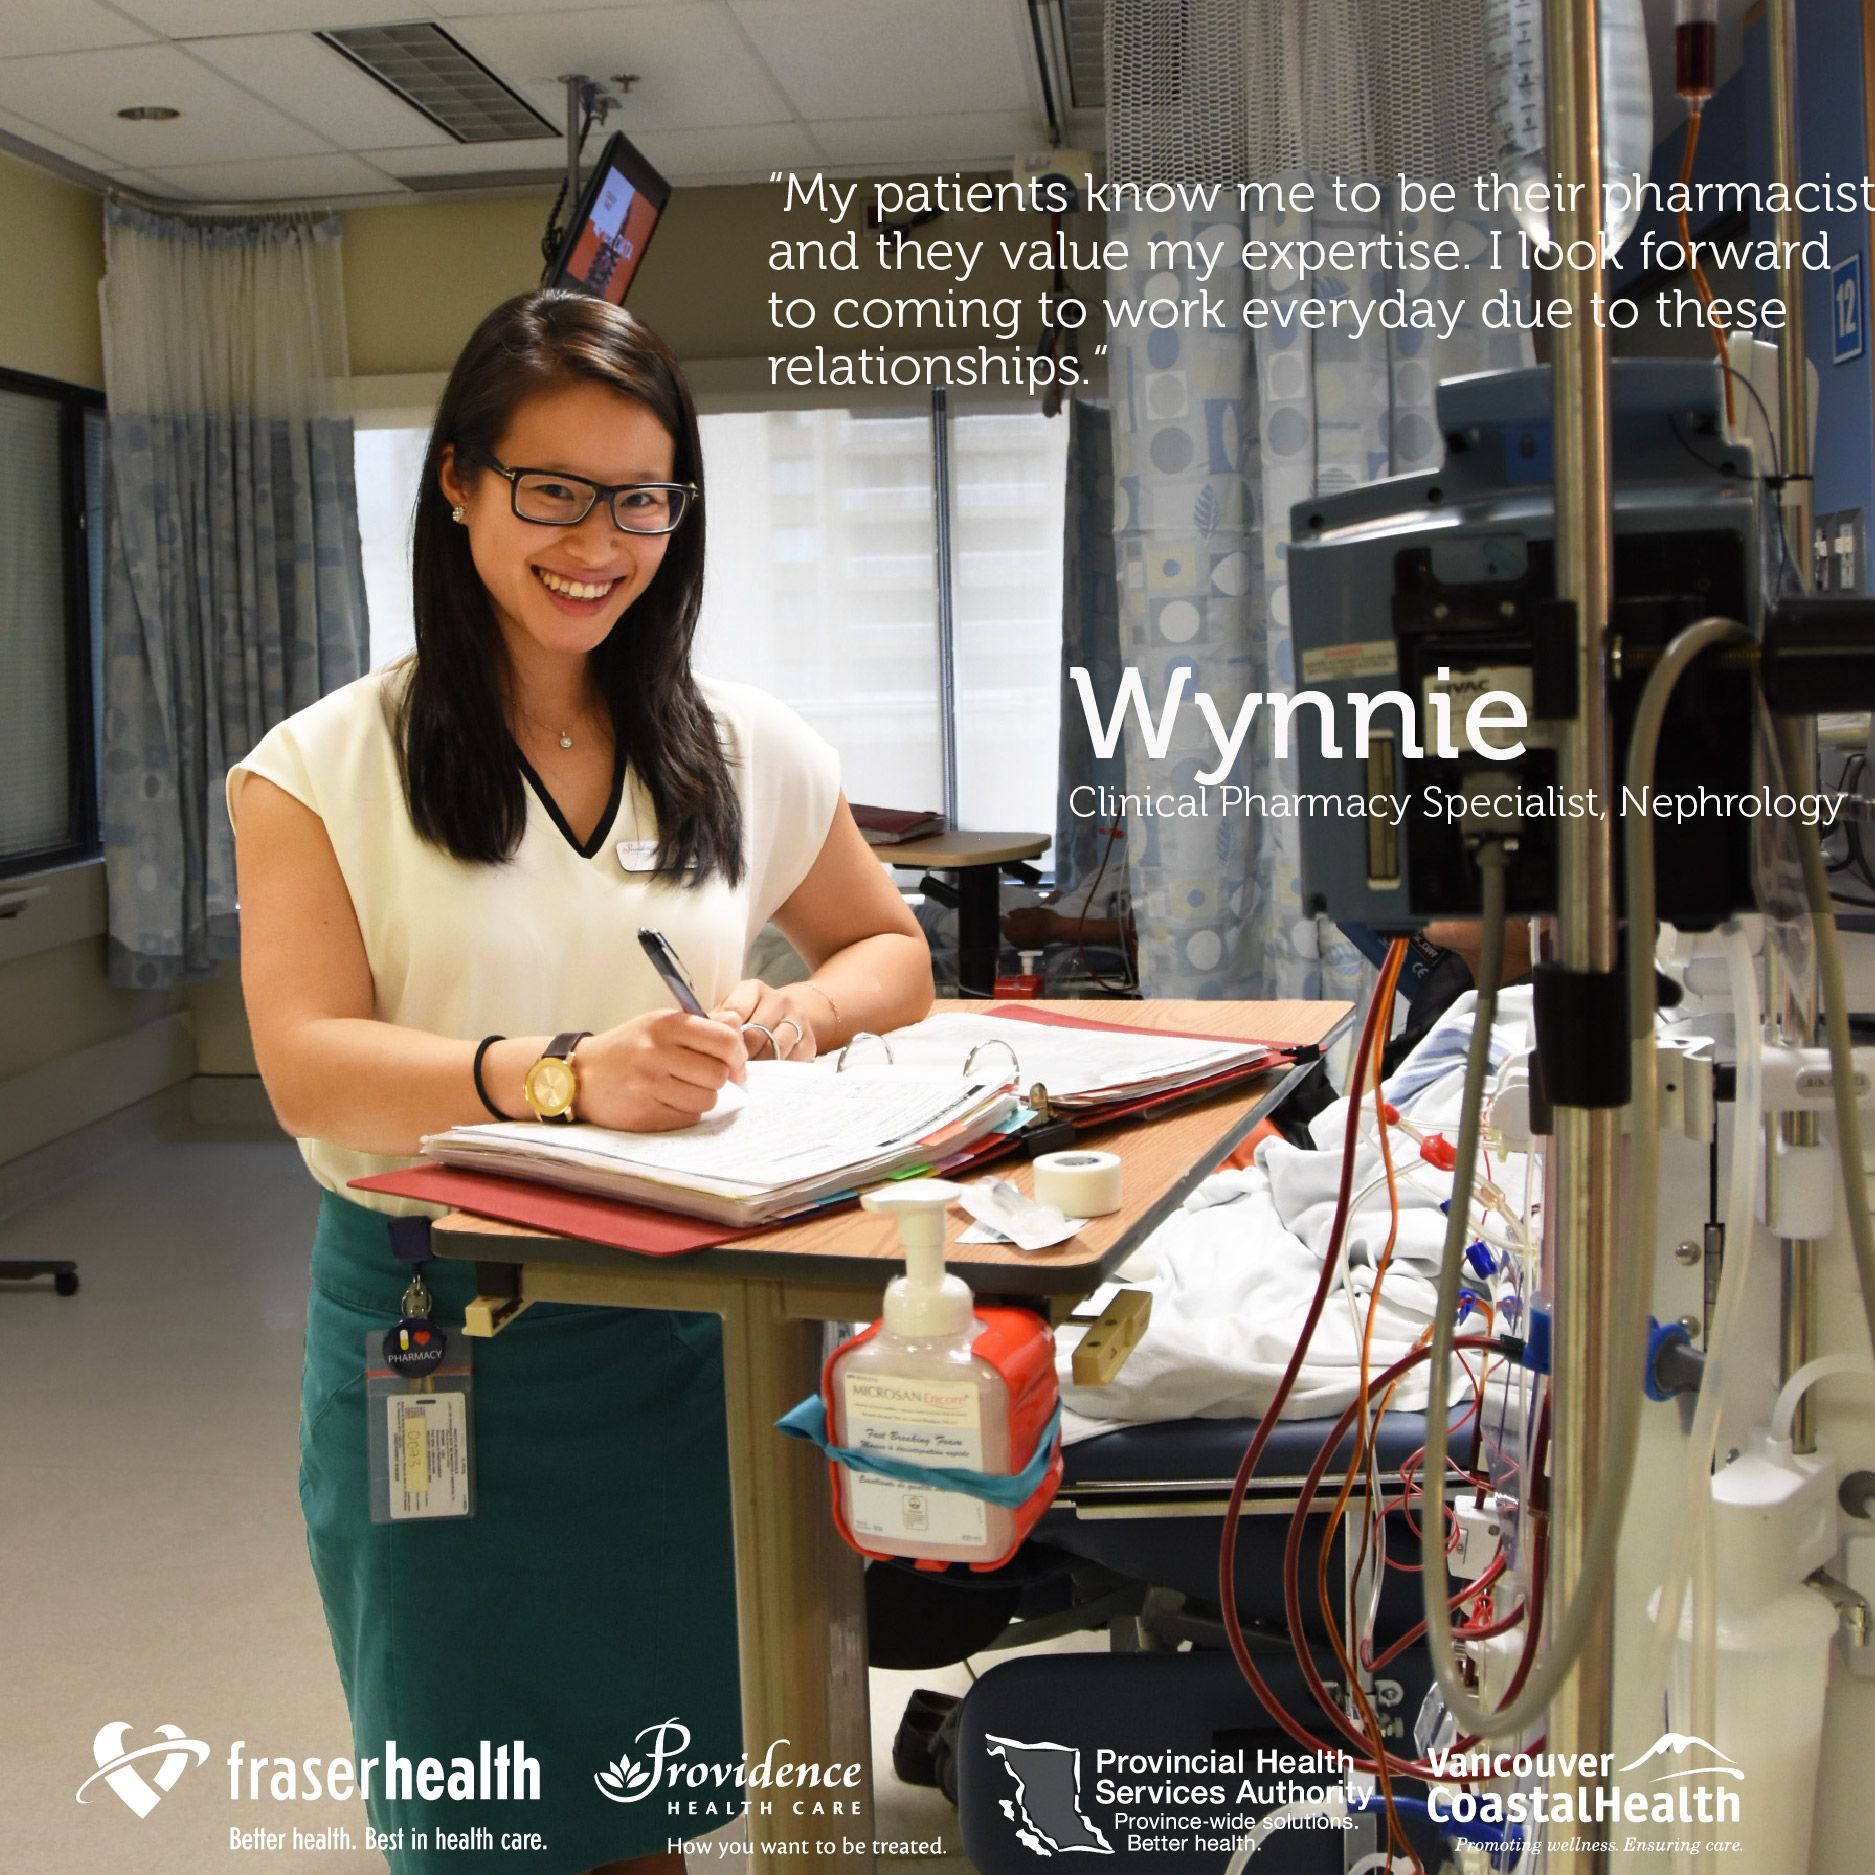 """I look forward to coming to work every day due to...""- Wynnie, Clinical Pharmacy Specialist https://t.co/CNjuR1sRri #IAMPHARMACIST #PAM2017 https://t.co/BB7qgcNWZB"